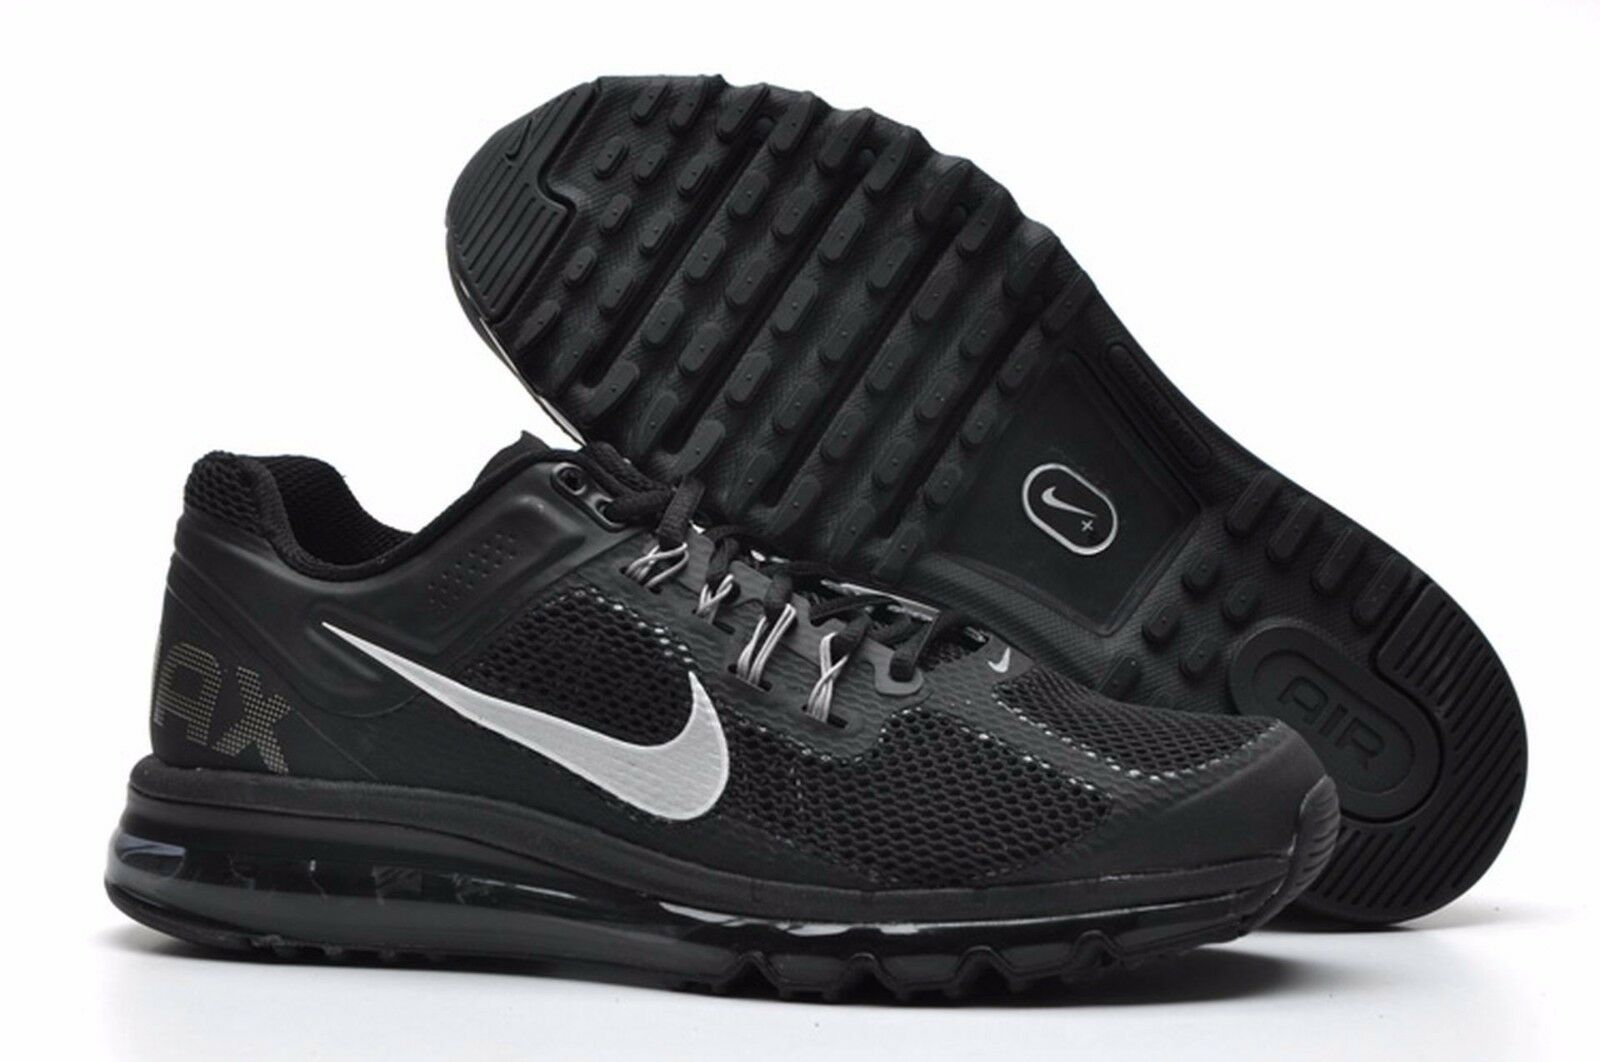 Nike Air Max + 2013 Running shoes size 7.5 554886-001 Mens Black Dark Grey